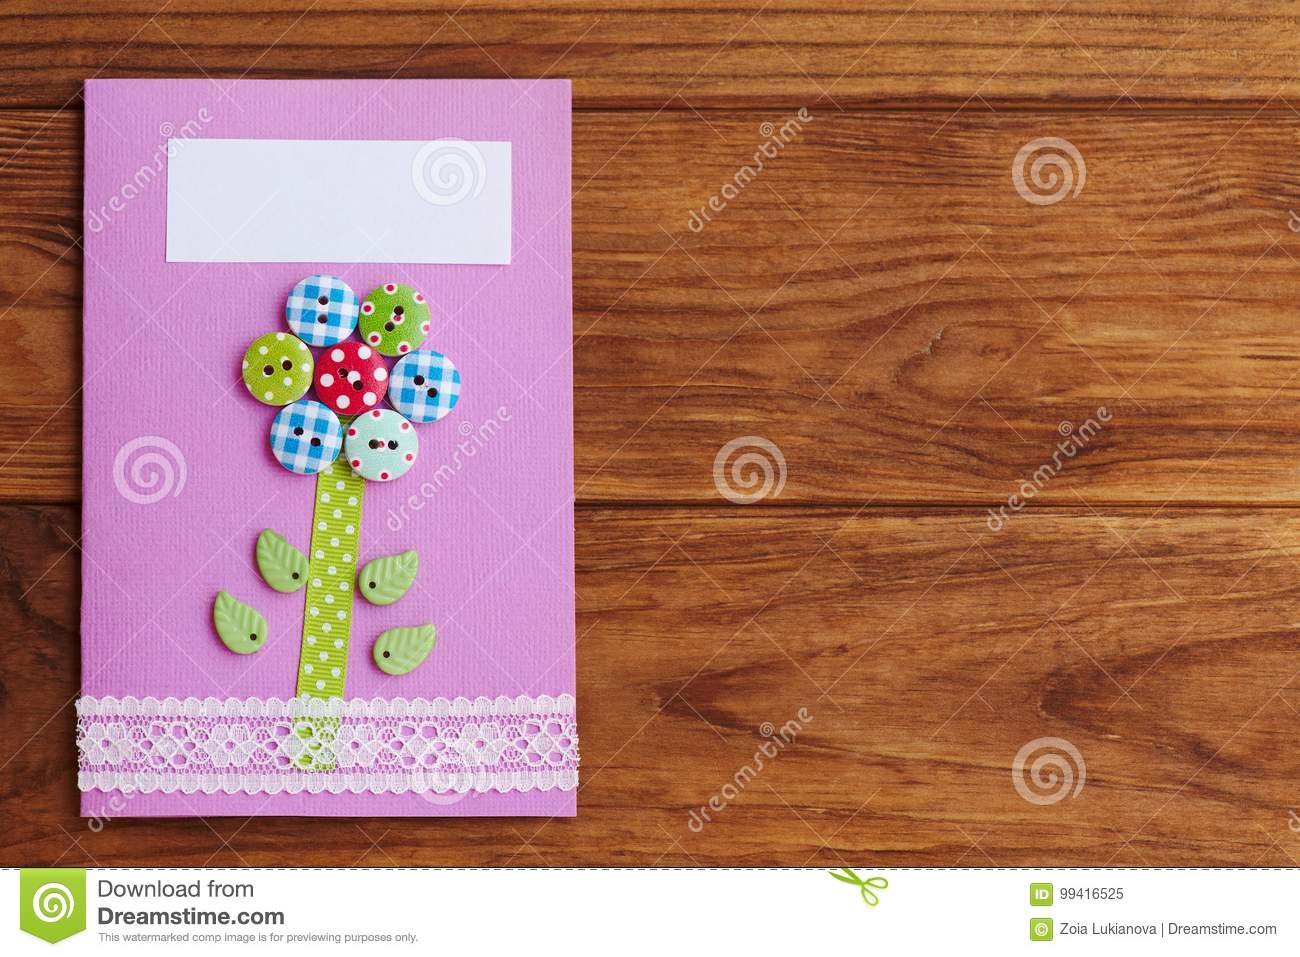 Swell Mother S Day Or Birthday Greeting Card With Flower On A Wooden Funny Birthday Cards Online Alyptdamsfinfo